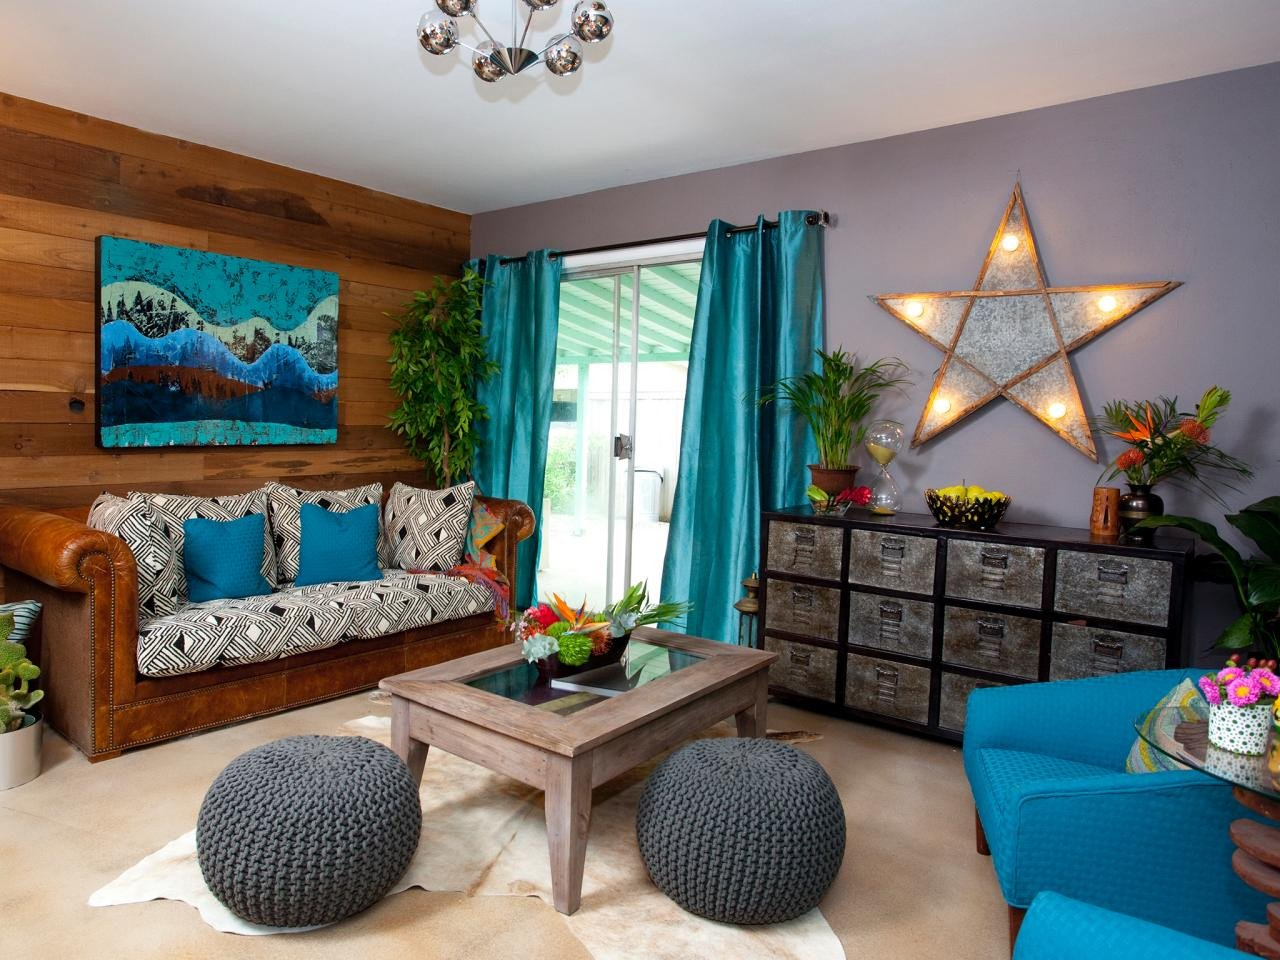 Wall Decor Living Room Ideas Best Of Excellent Wall Decorating Ideas for Living Room